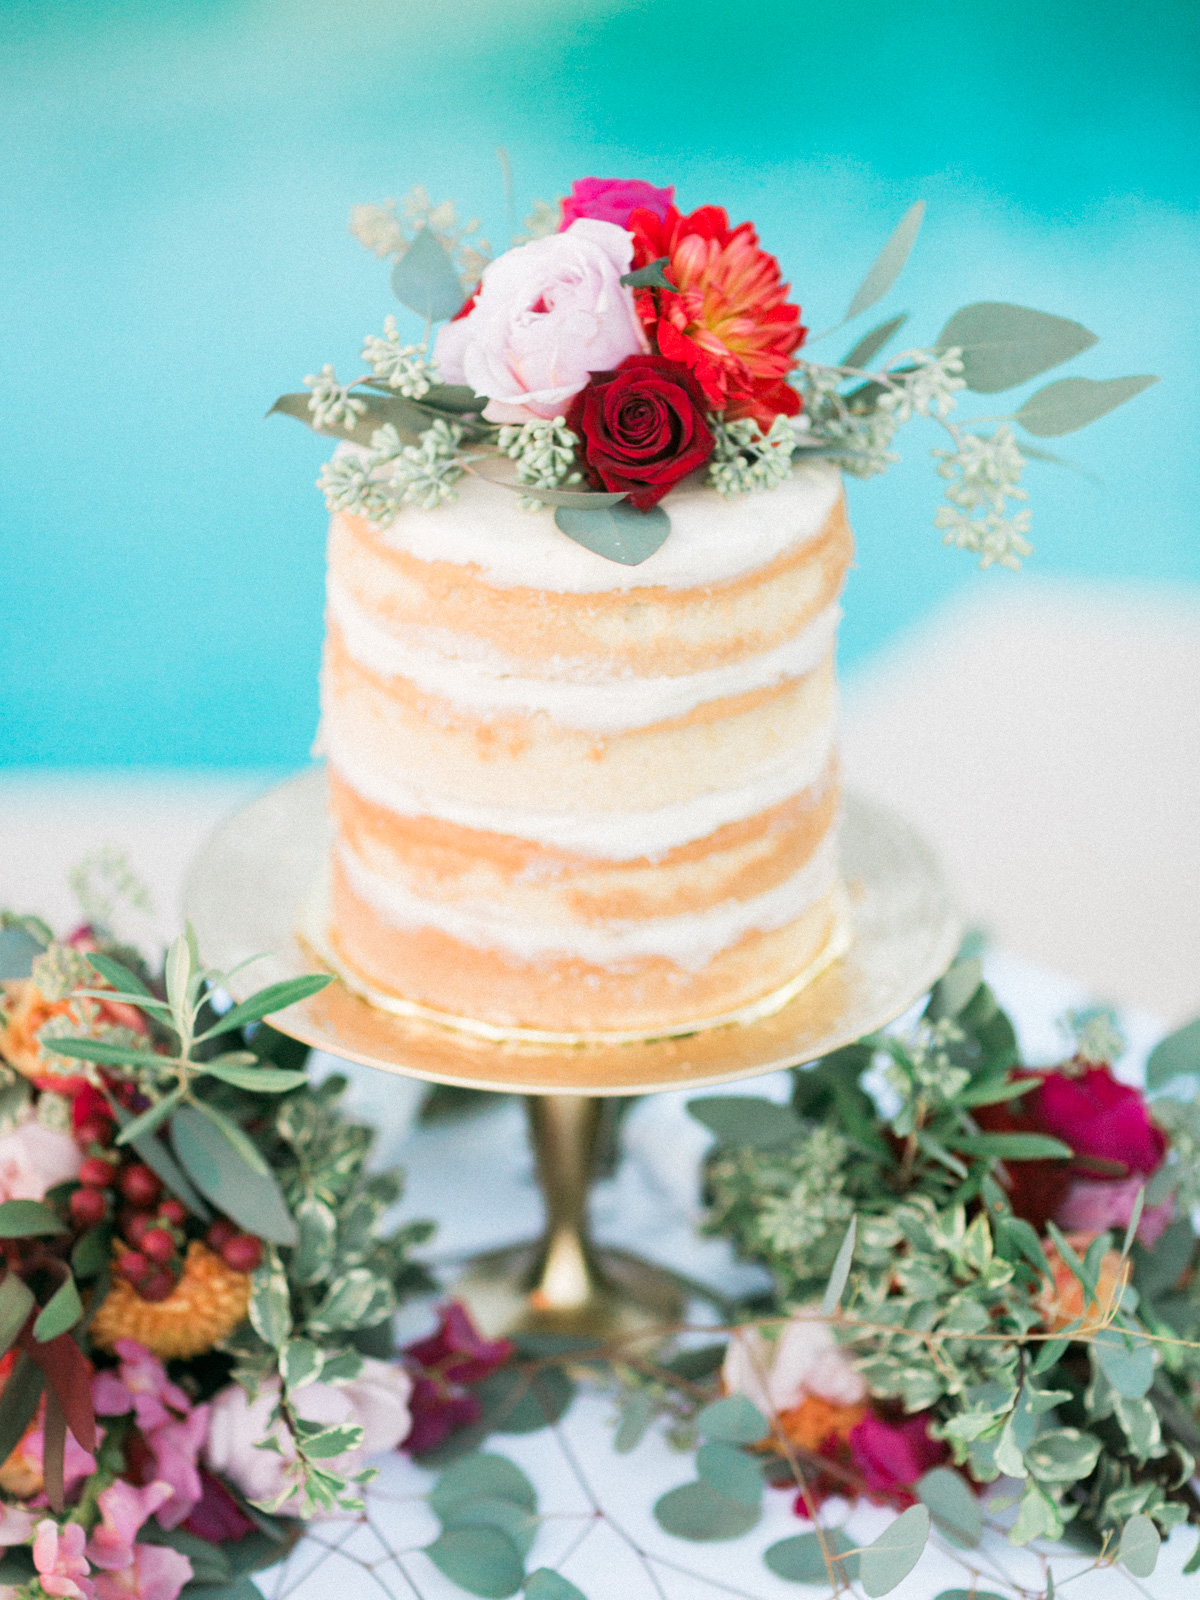 Simple and sweet naked cake surrounded by greenery and florals